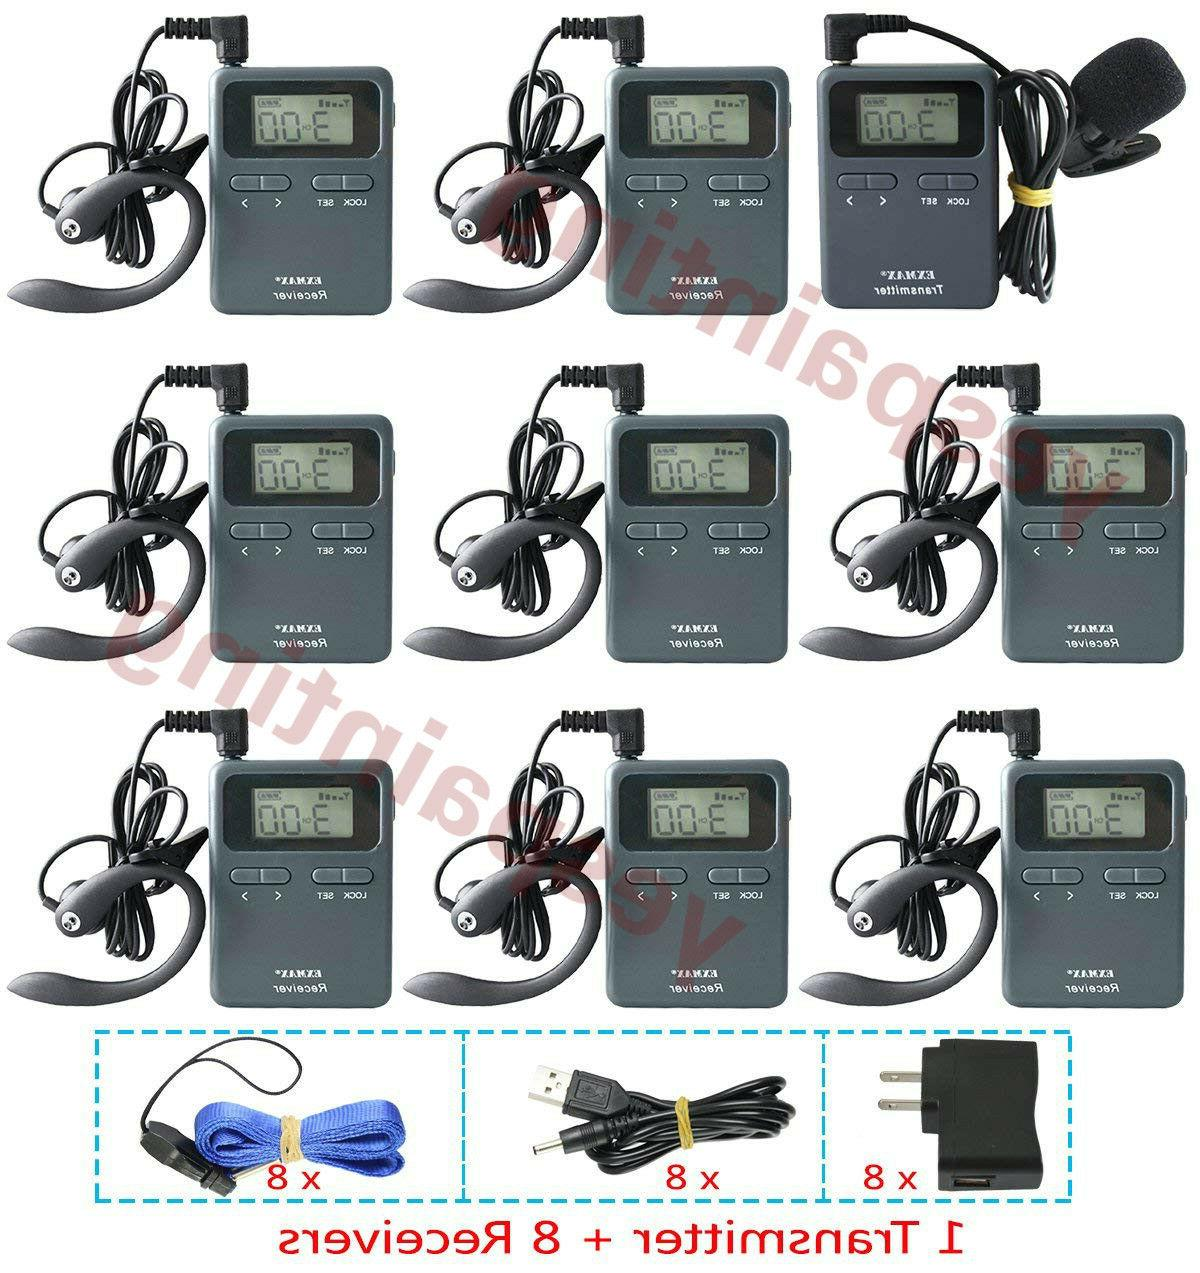 wdt 99 uhf wireless tour guide system